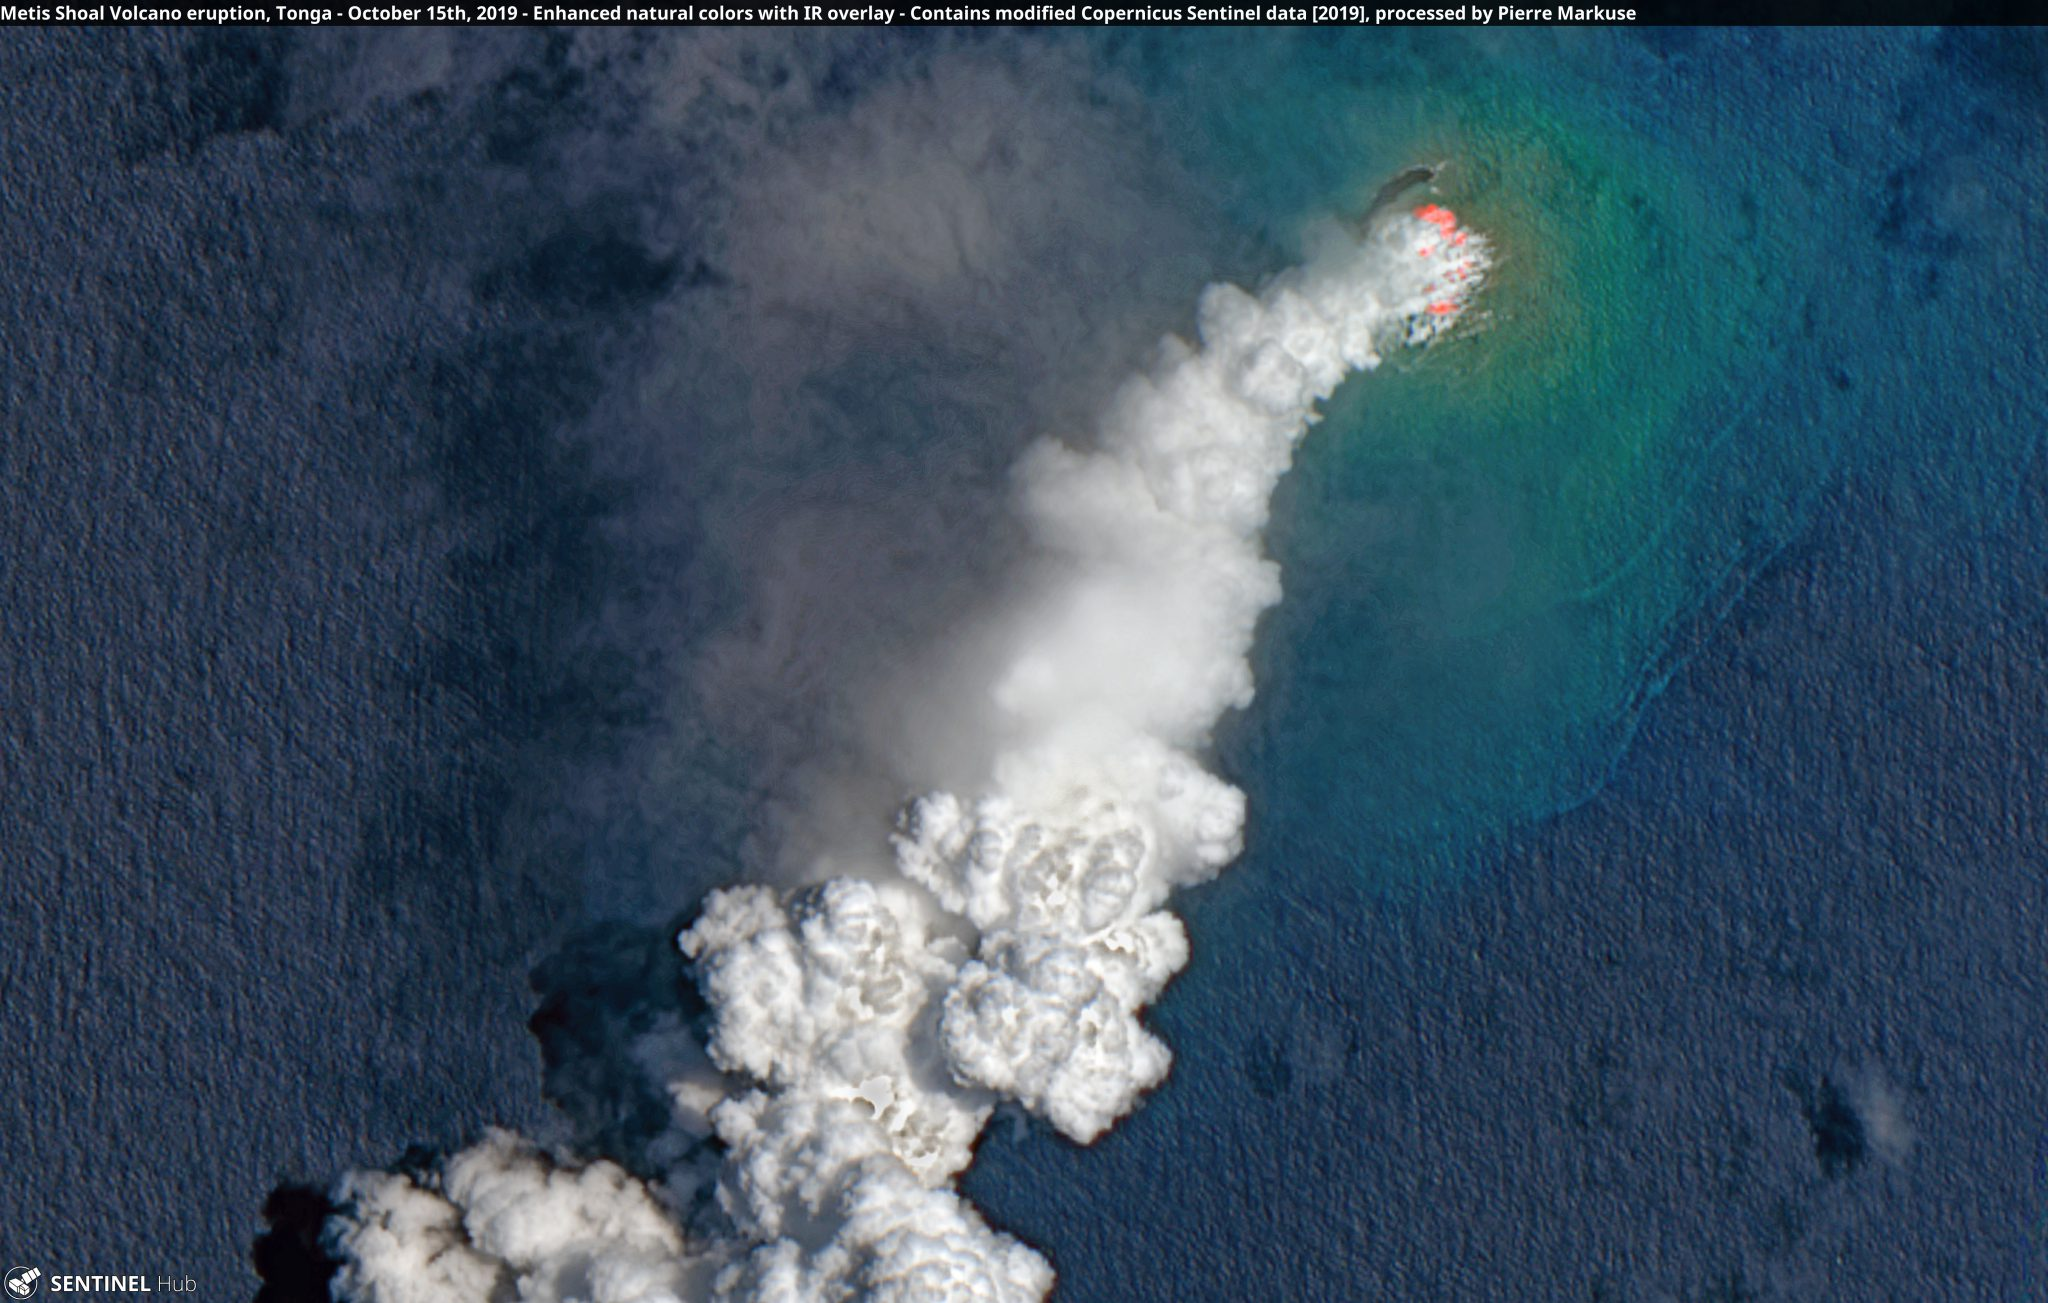 desc:Metis Shoal Volcano eruption, Tonga - October 15th, 2019 Copernicus/Pierre Markuse